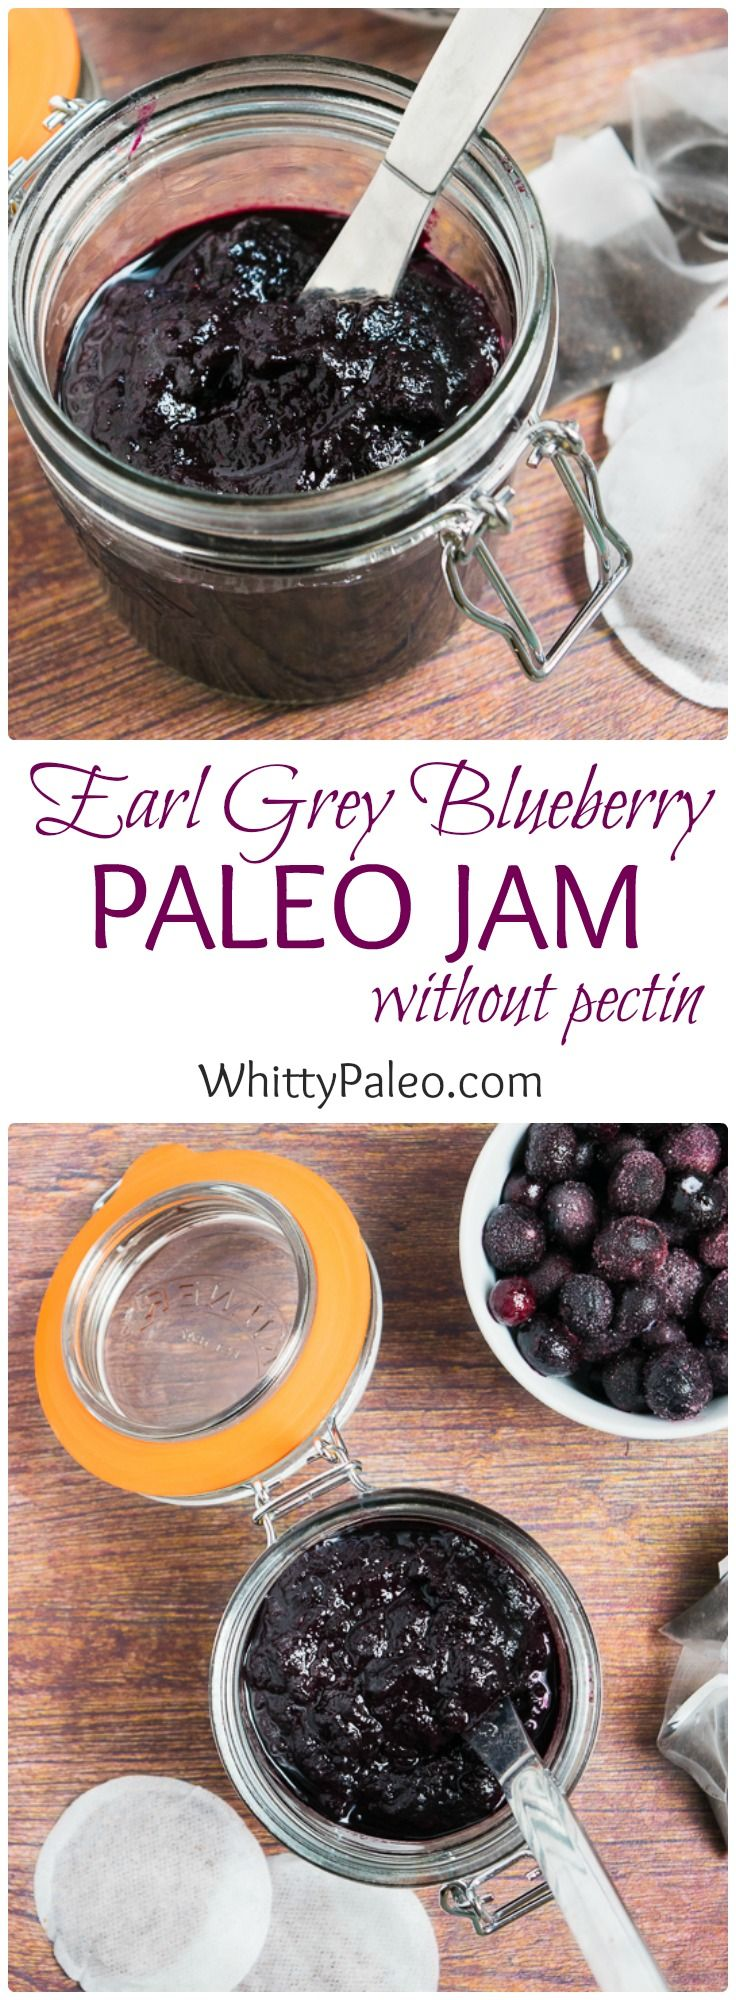 Homemade Earl Grey Blueberry Paleo Jam without pectin! This jam uses frozen blueberries and brewed earl grey tea for a sweet infusion!